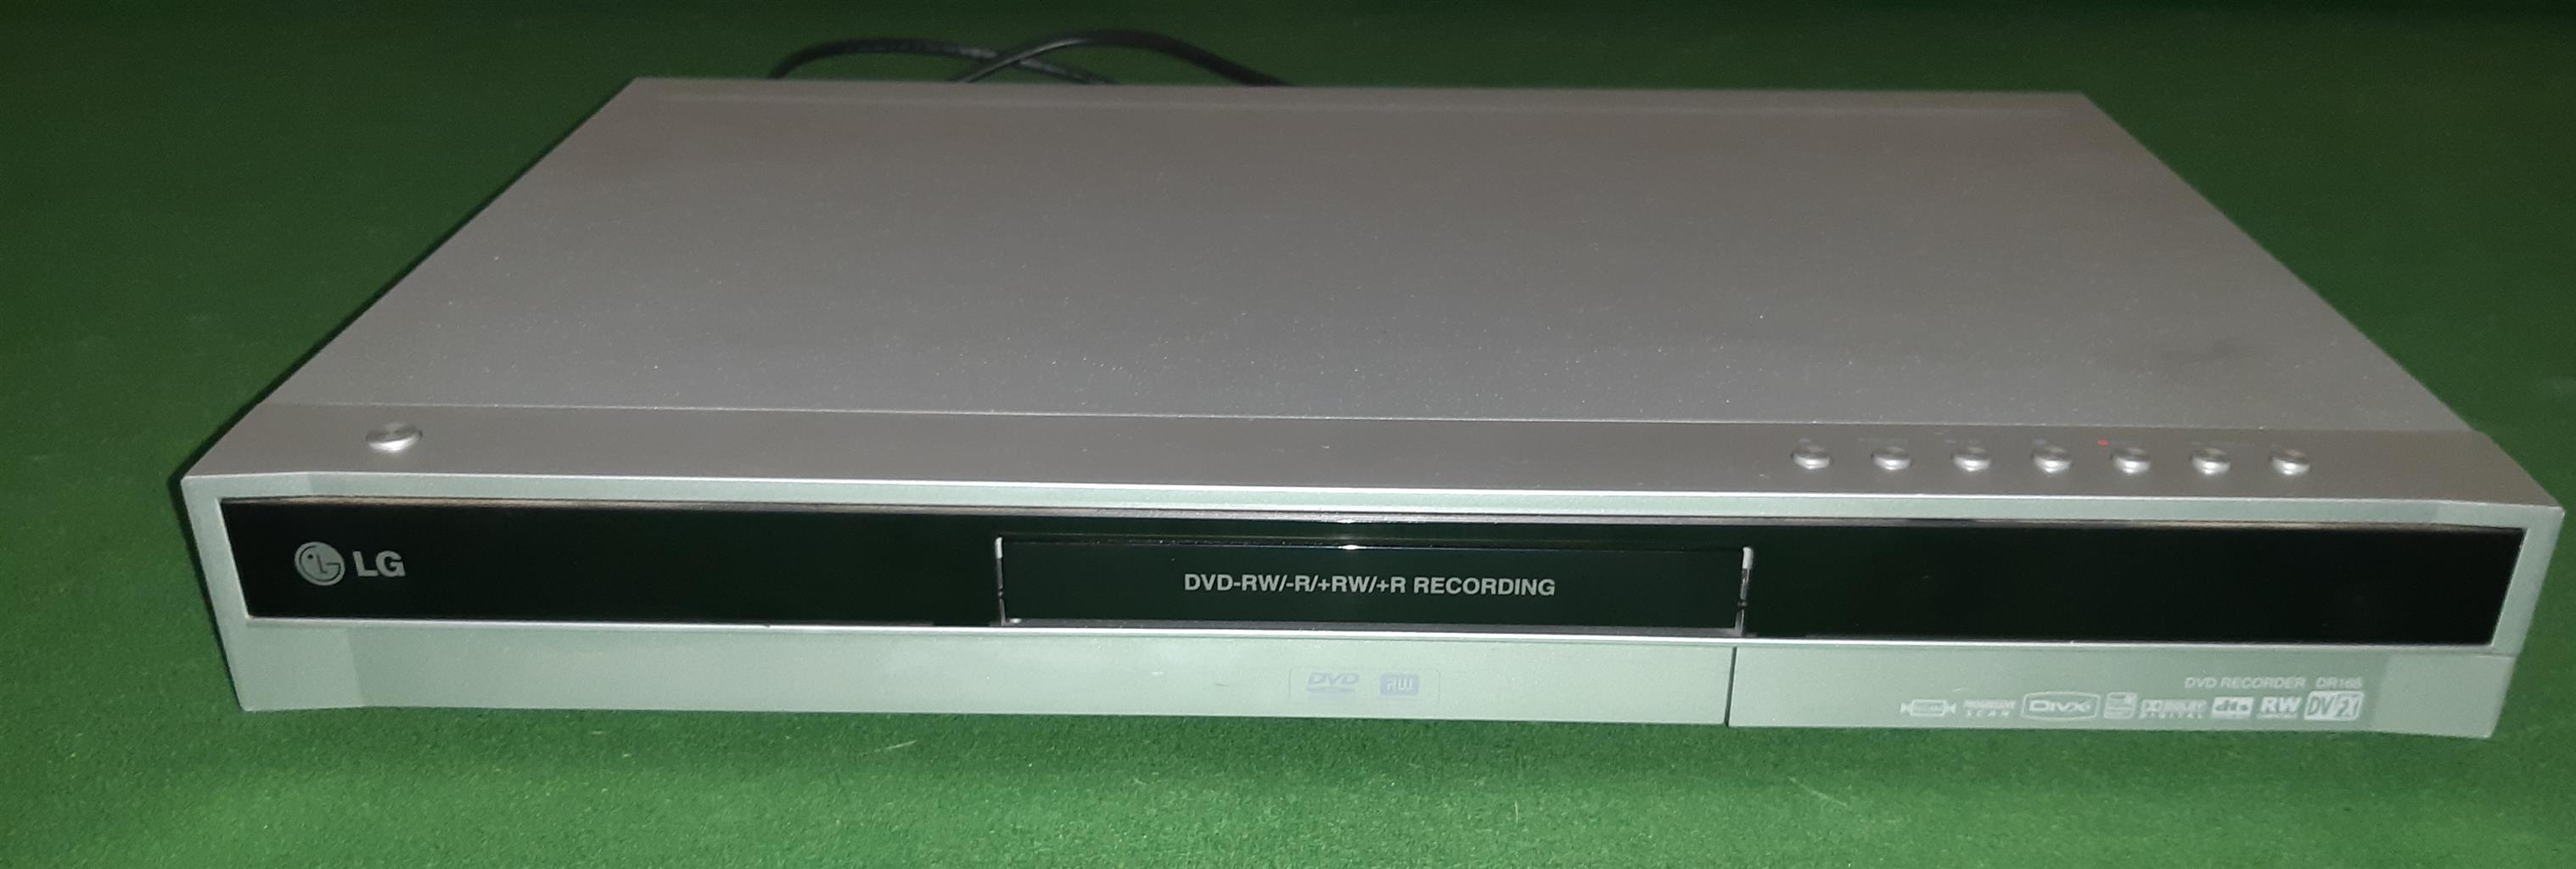 DVD recorder -  LG - model DR165 - read and write